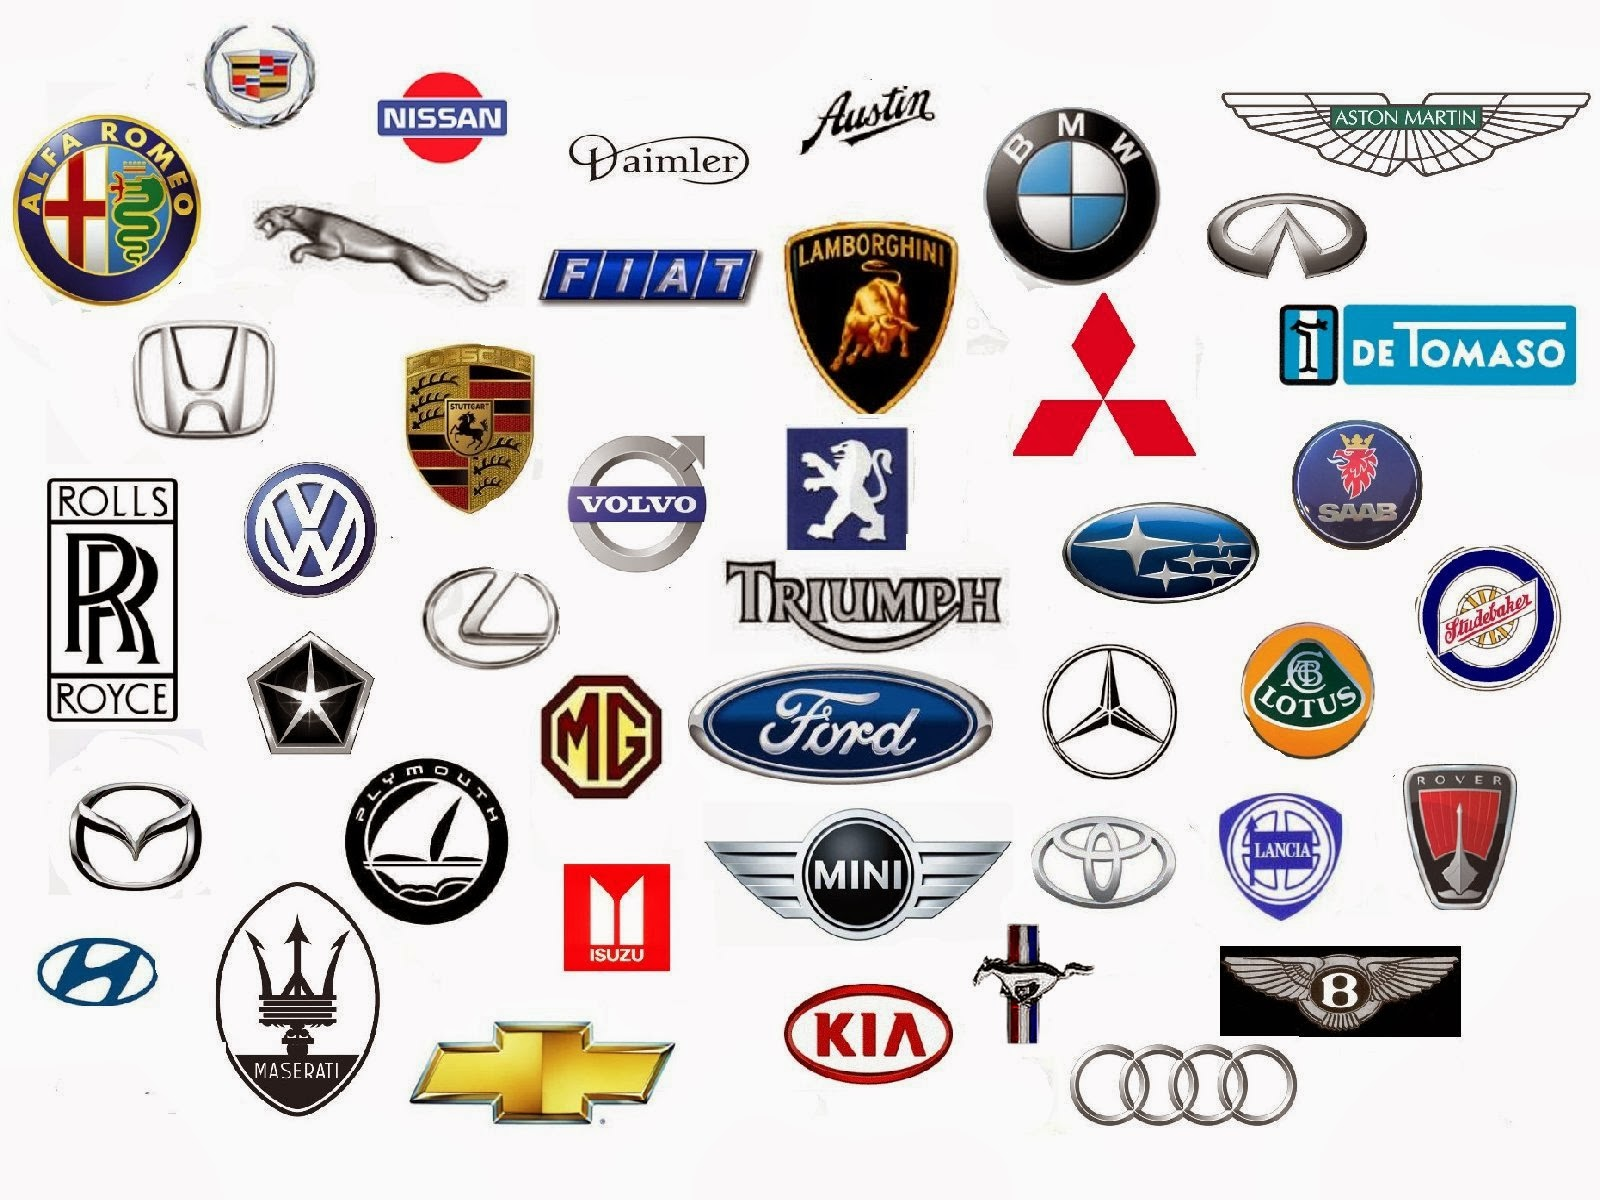 Car Logos And Their Brand Names >> LOGOS IMAGE